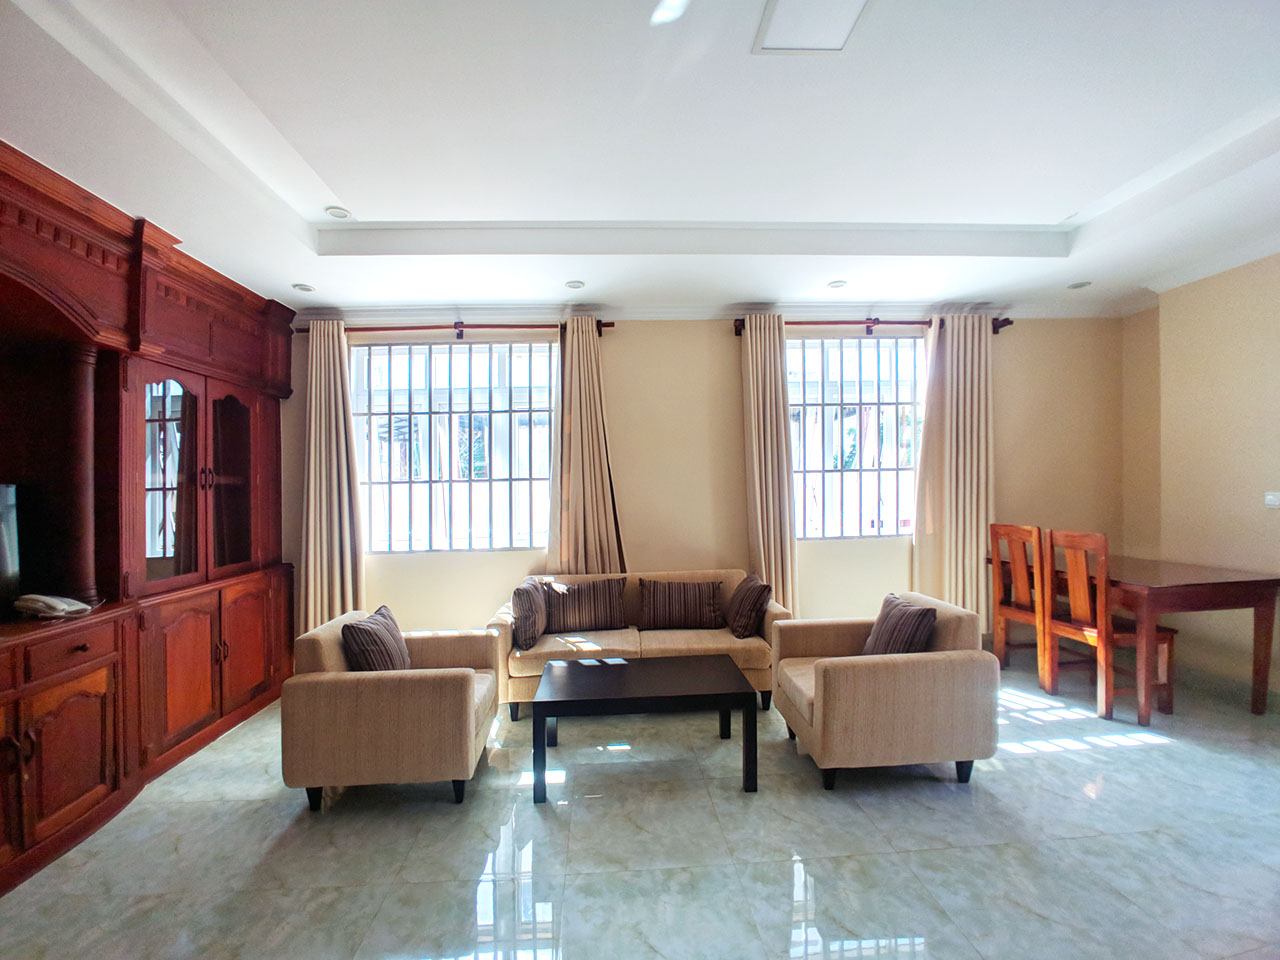 2 Beds 100 Sq m Apartment for Rent @ Tuol Tumpung area